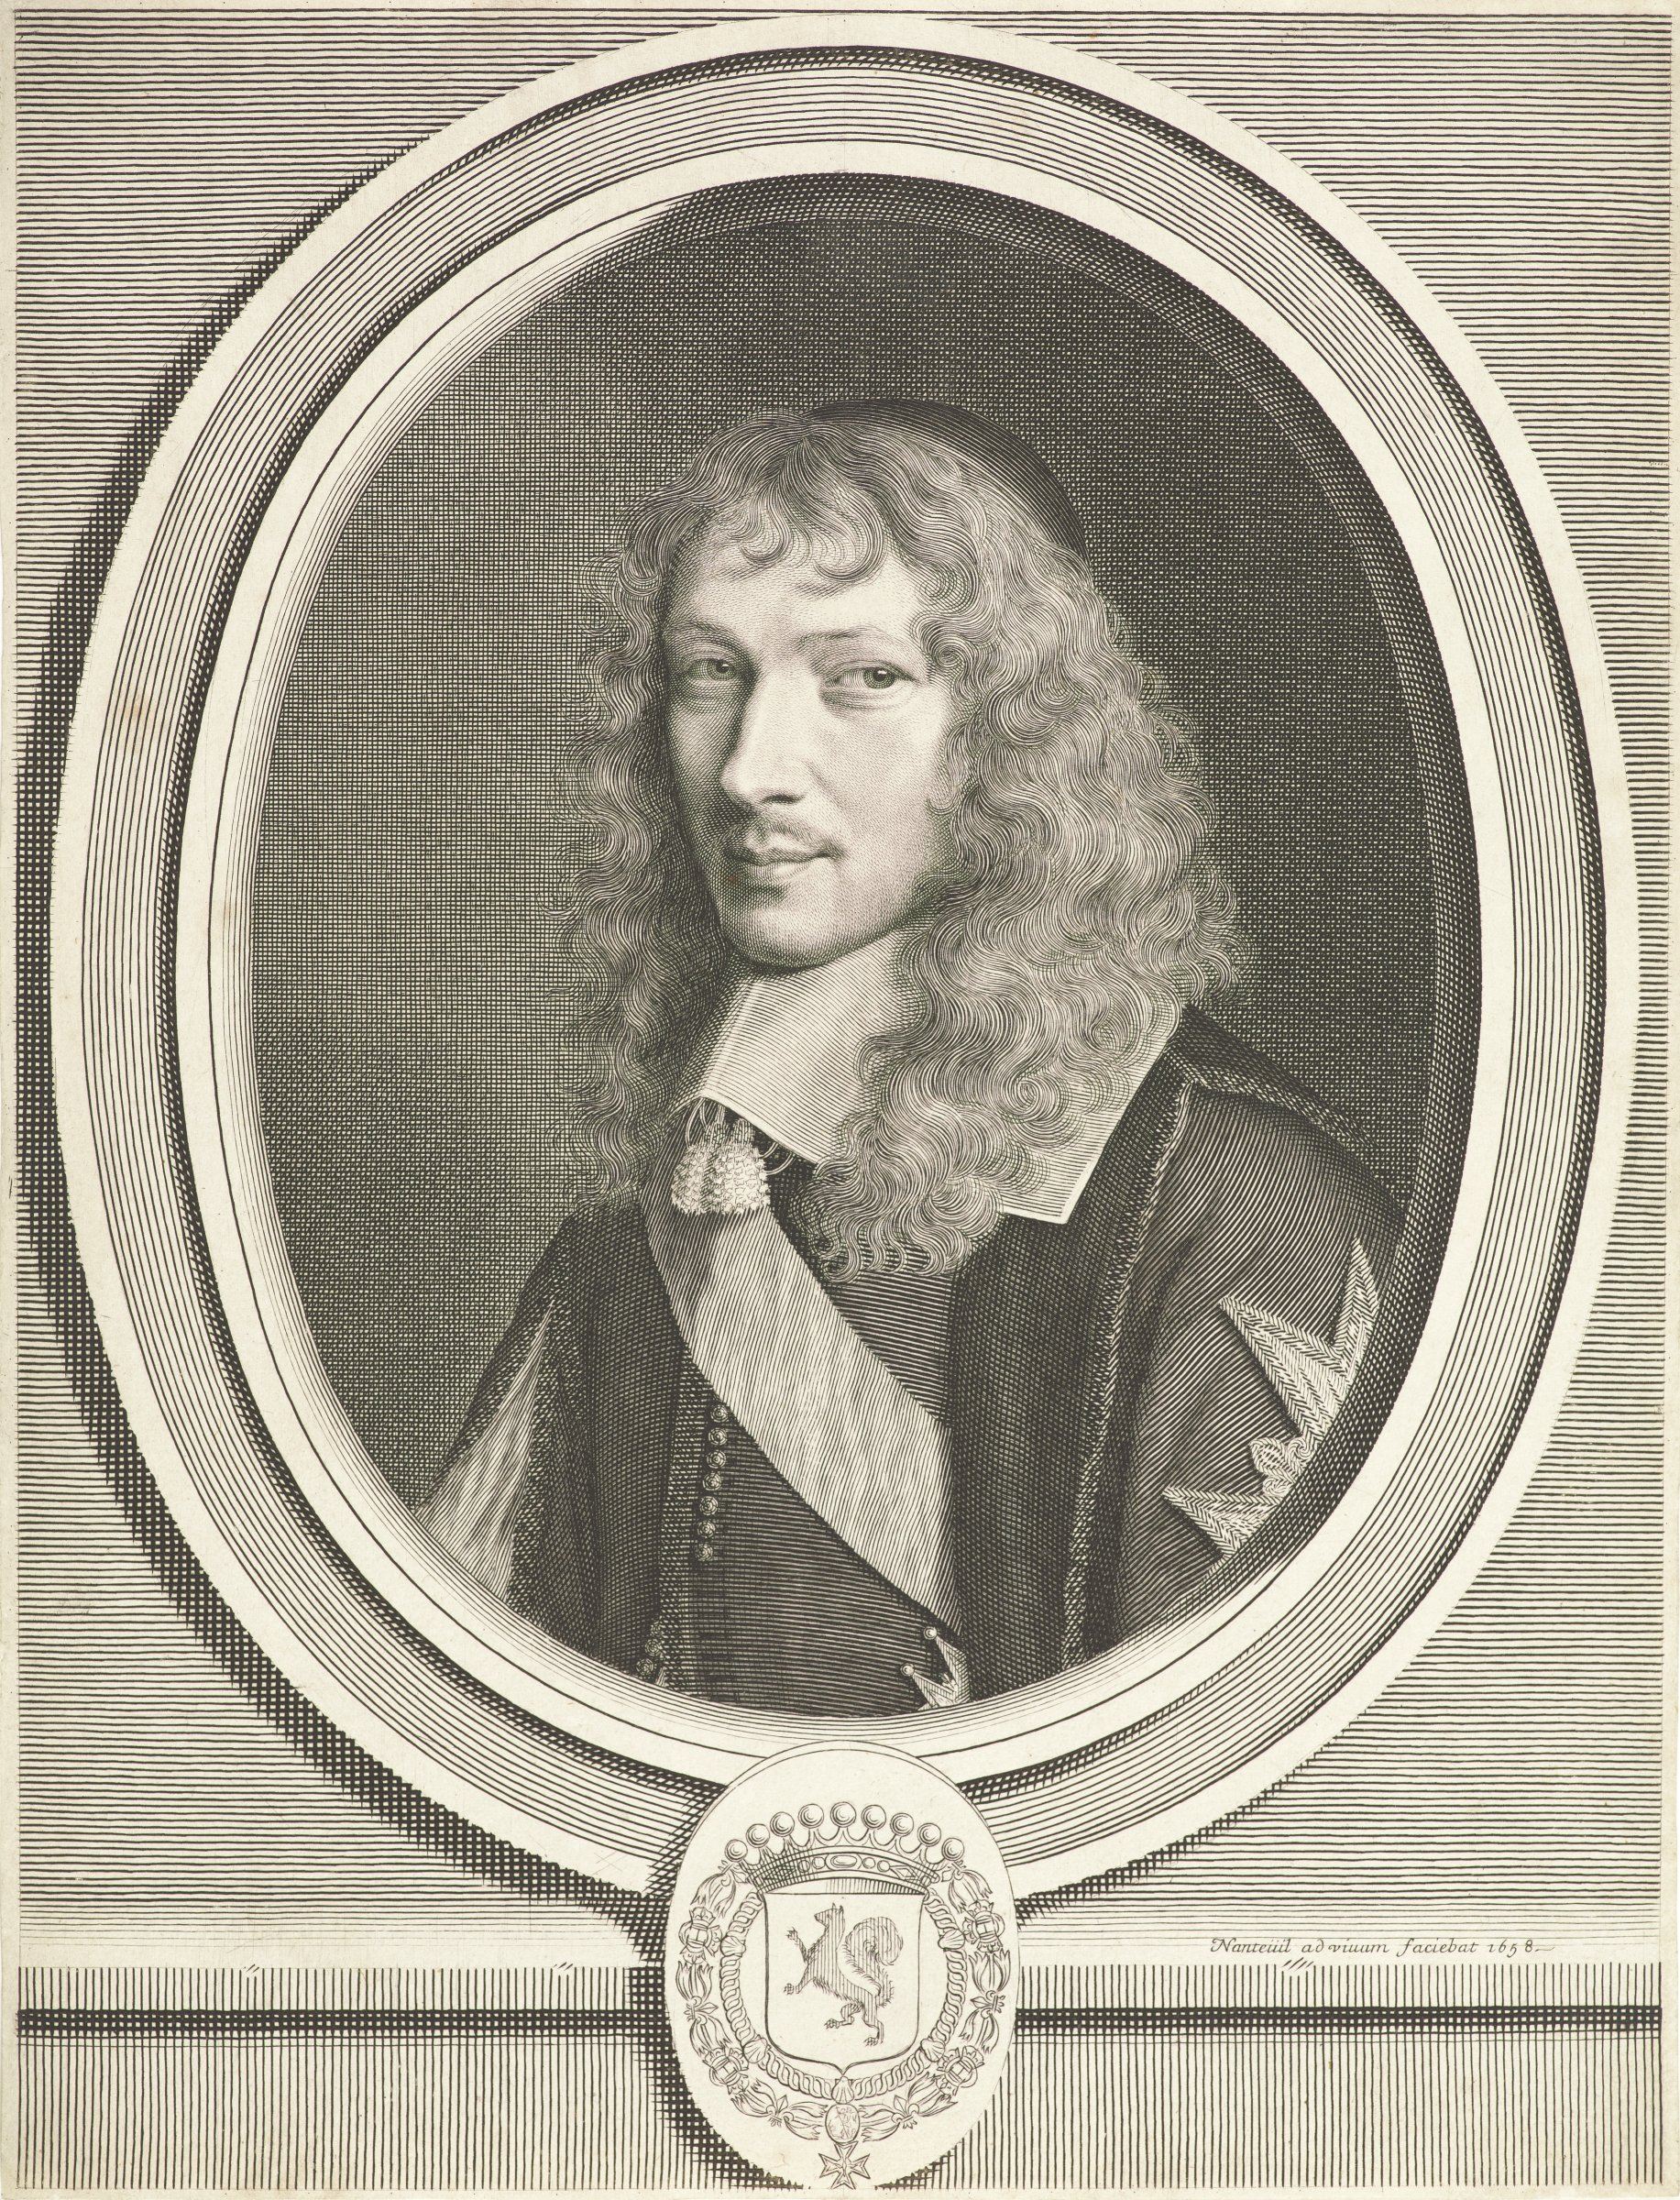 Portrait of Basile Fouquet with long curly hair wearing a zucchetto and a wide collar with short tassels. He is depicted within an oval frame. Below the frame is a crowned crest.